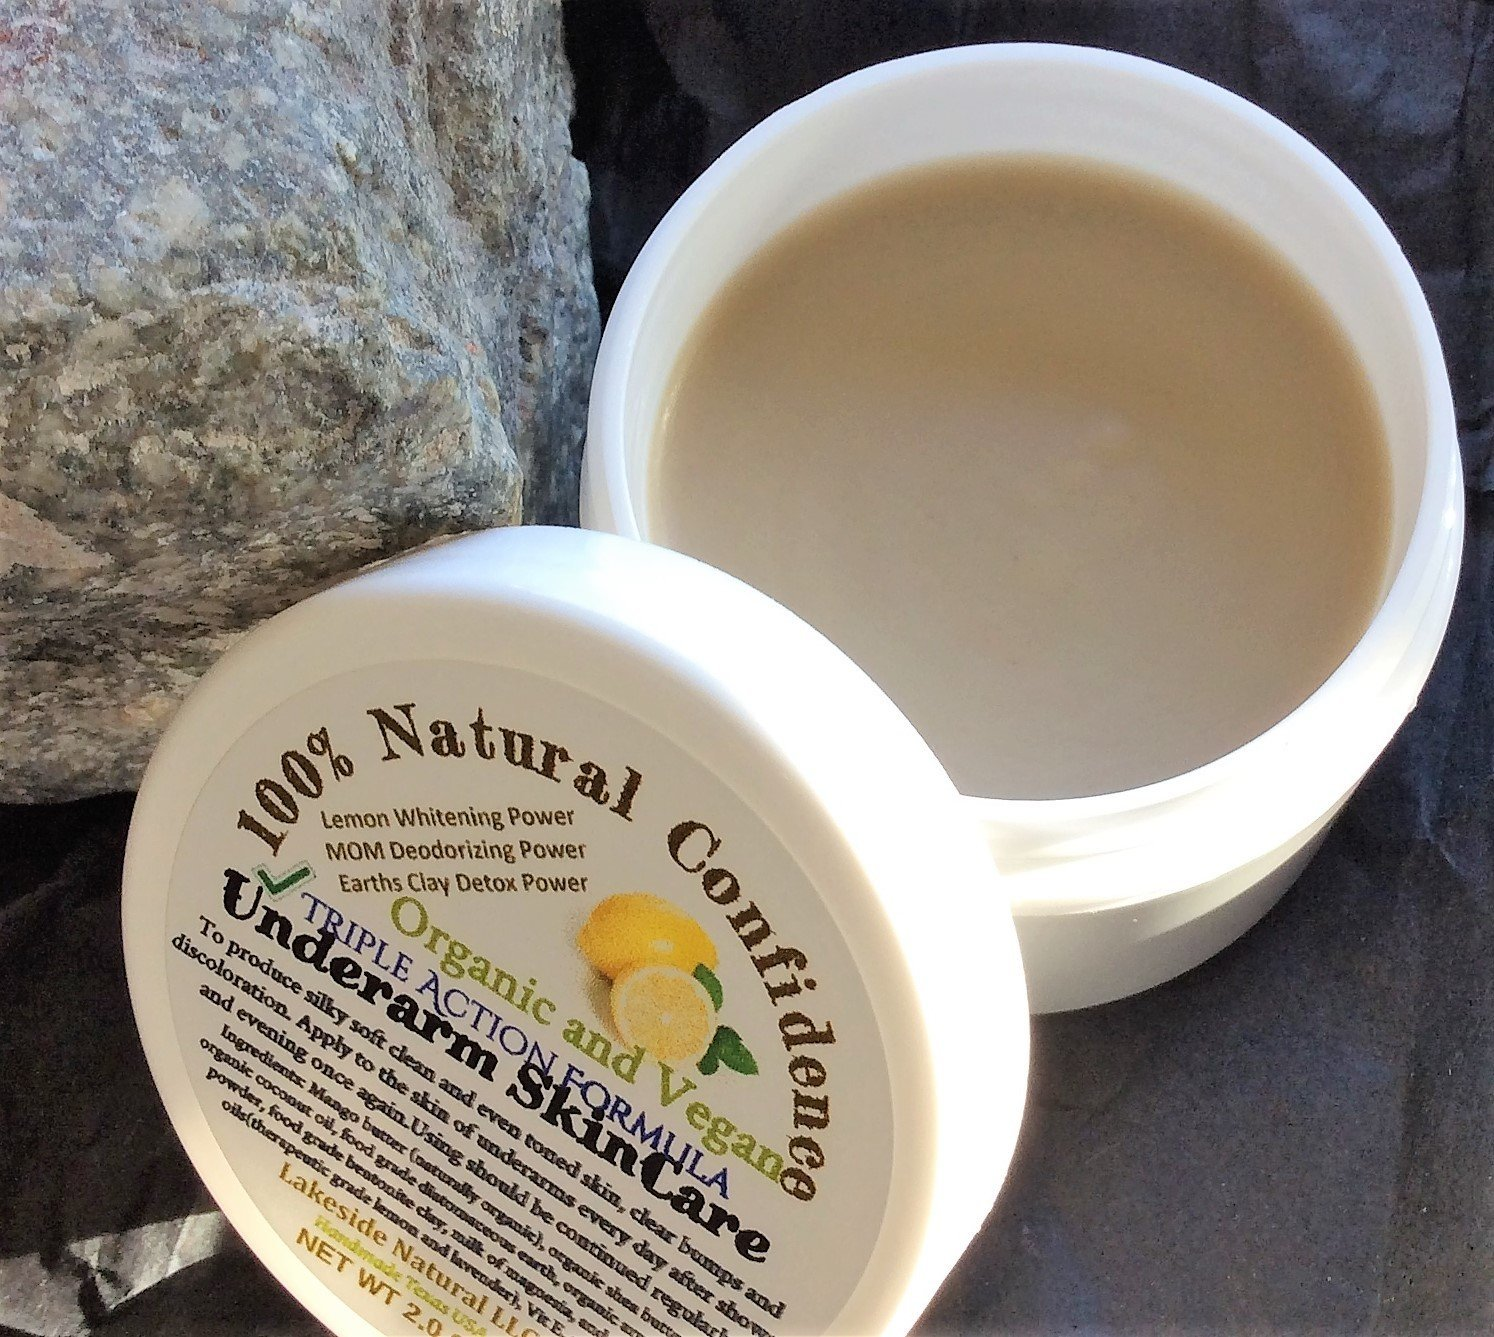 All Natural Armpit Brightener & Underarm Skincare - Armpit Whitening with Lemon, Milk of Magnesia and Clay Power Detox